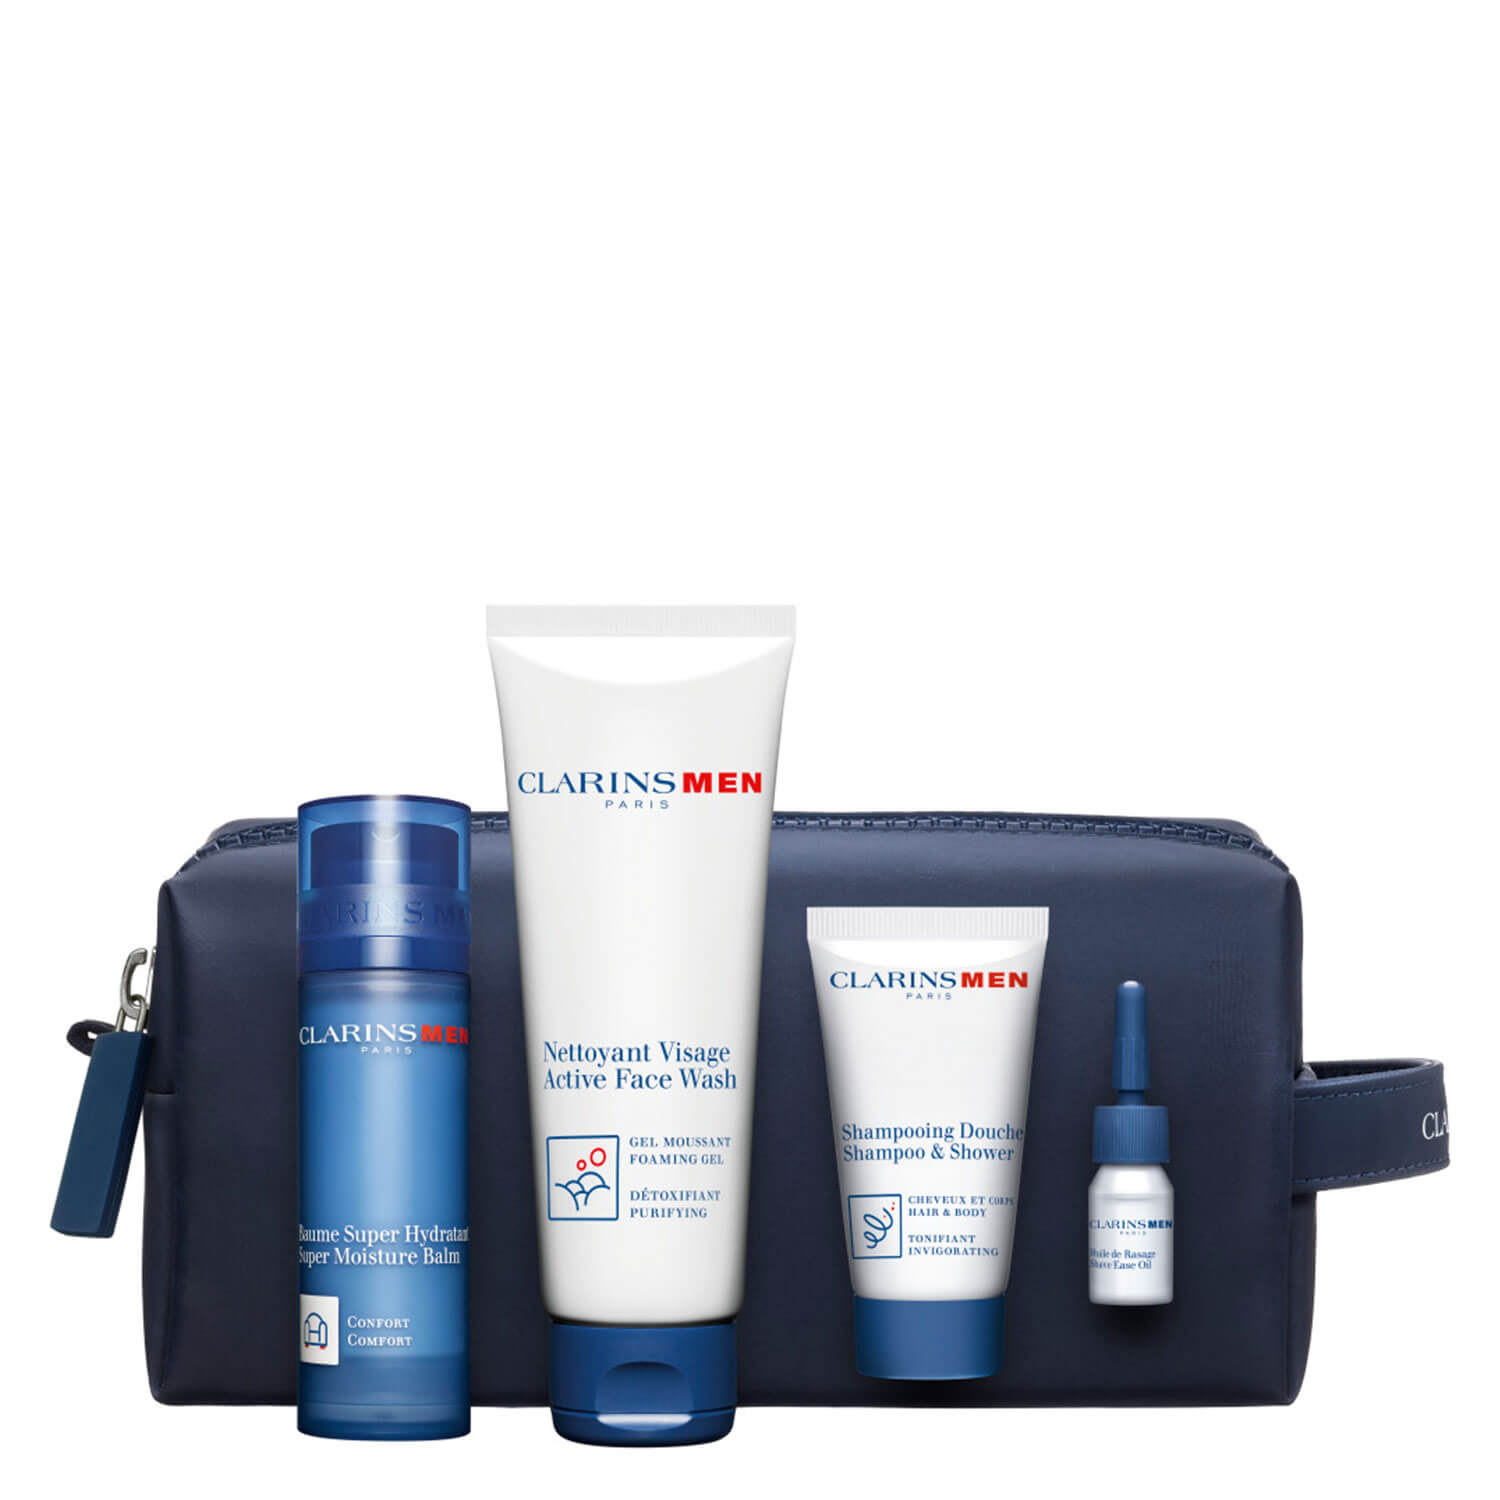 Clarins Men - Super Moisture Balm Set